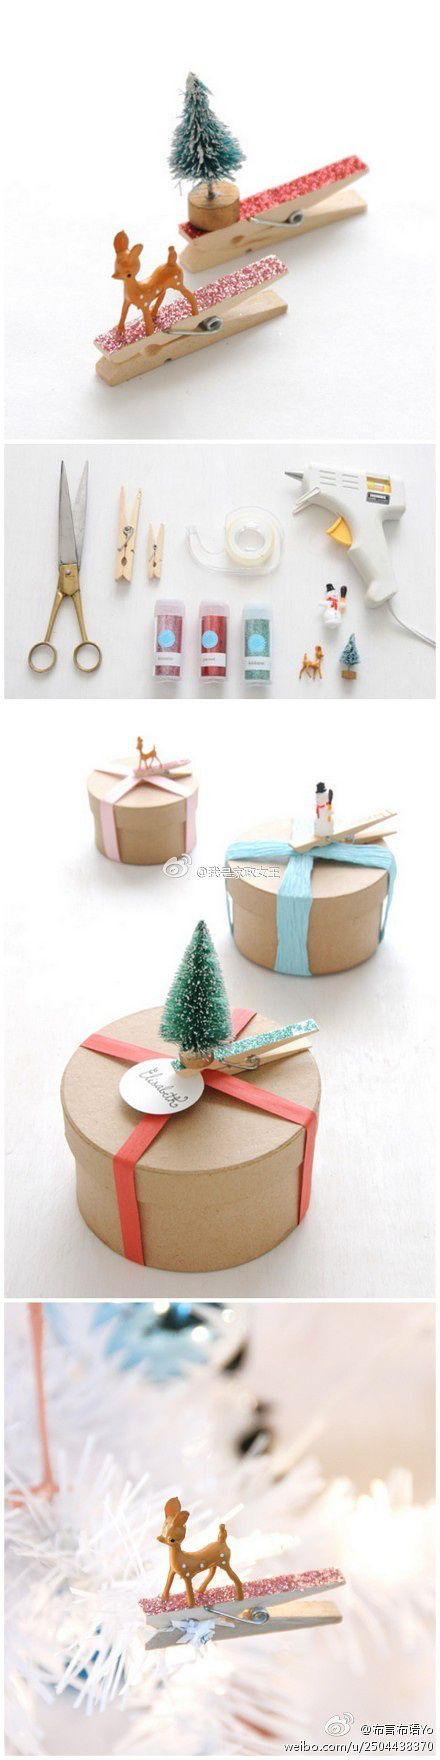 present wrapping tutorial